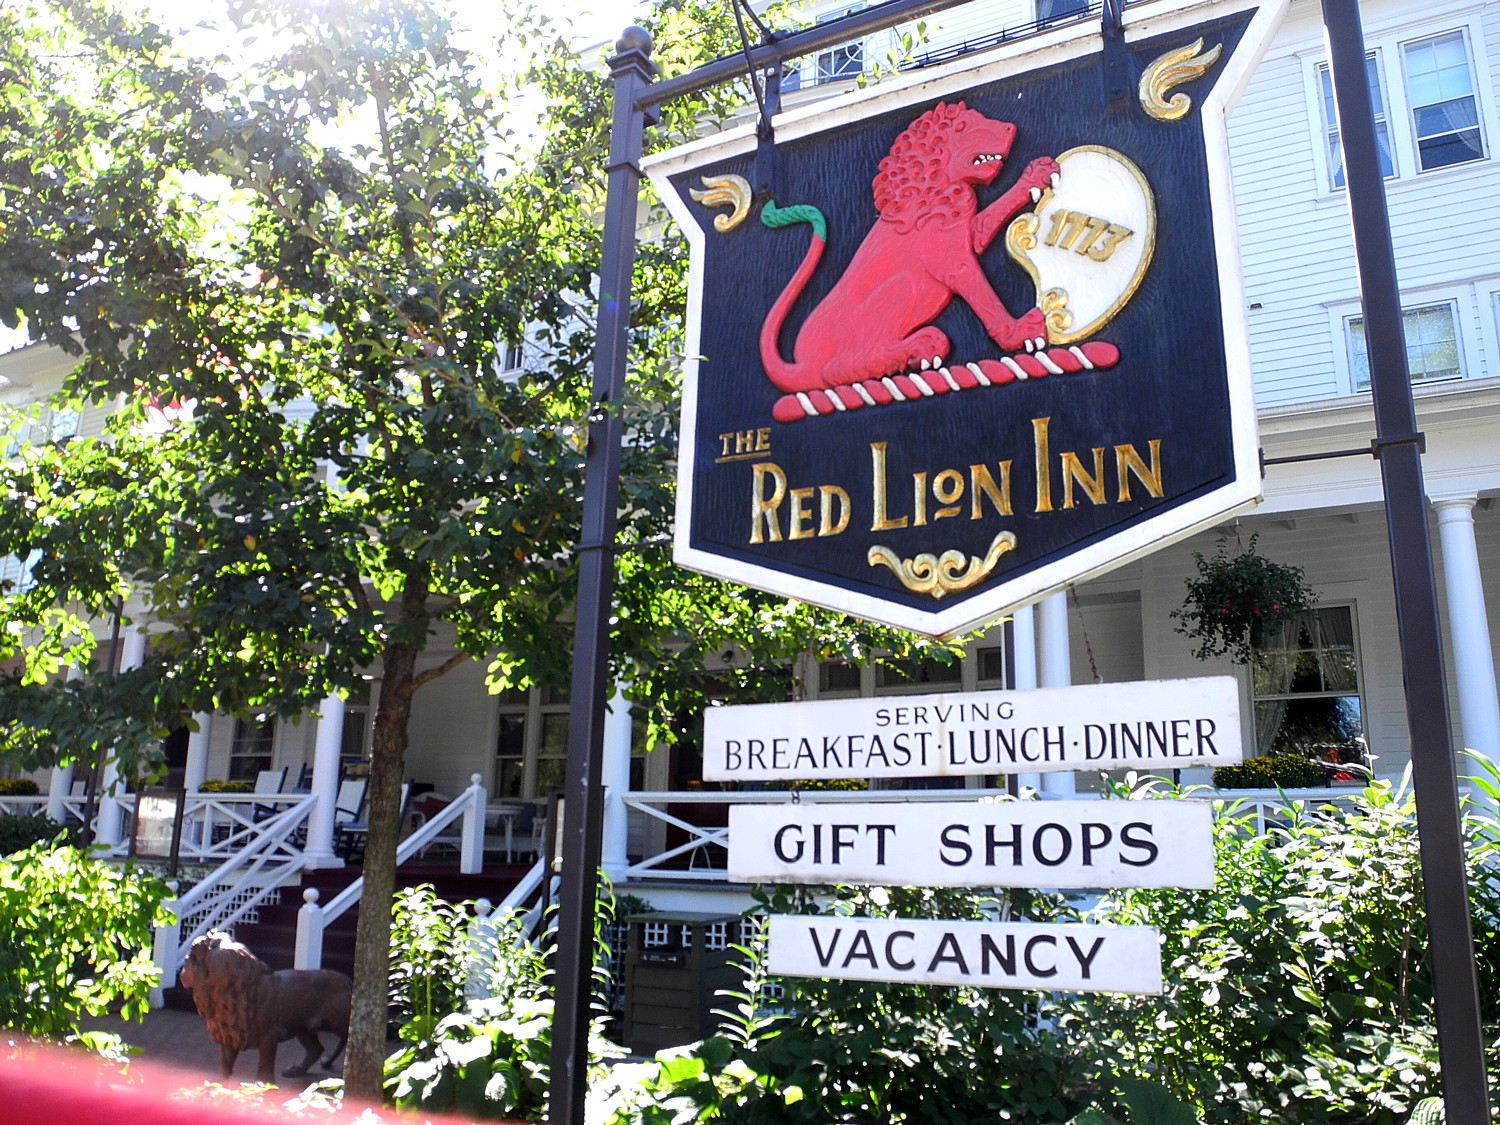 """The historic """"Red Lion Inn in Stockbridge, MA is offering """"The Norman Rockwell Experience"""" winter package © 2017 Karen Rubin/goingplacesfarandnear.com"""